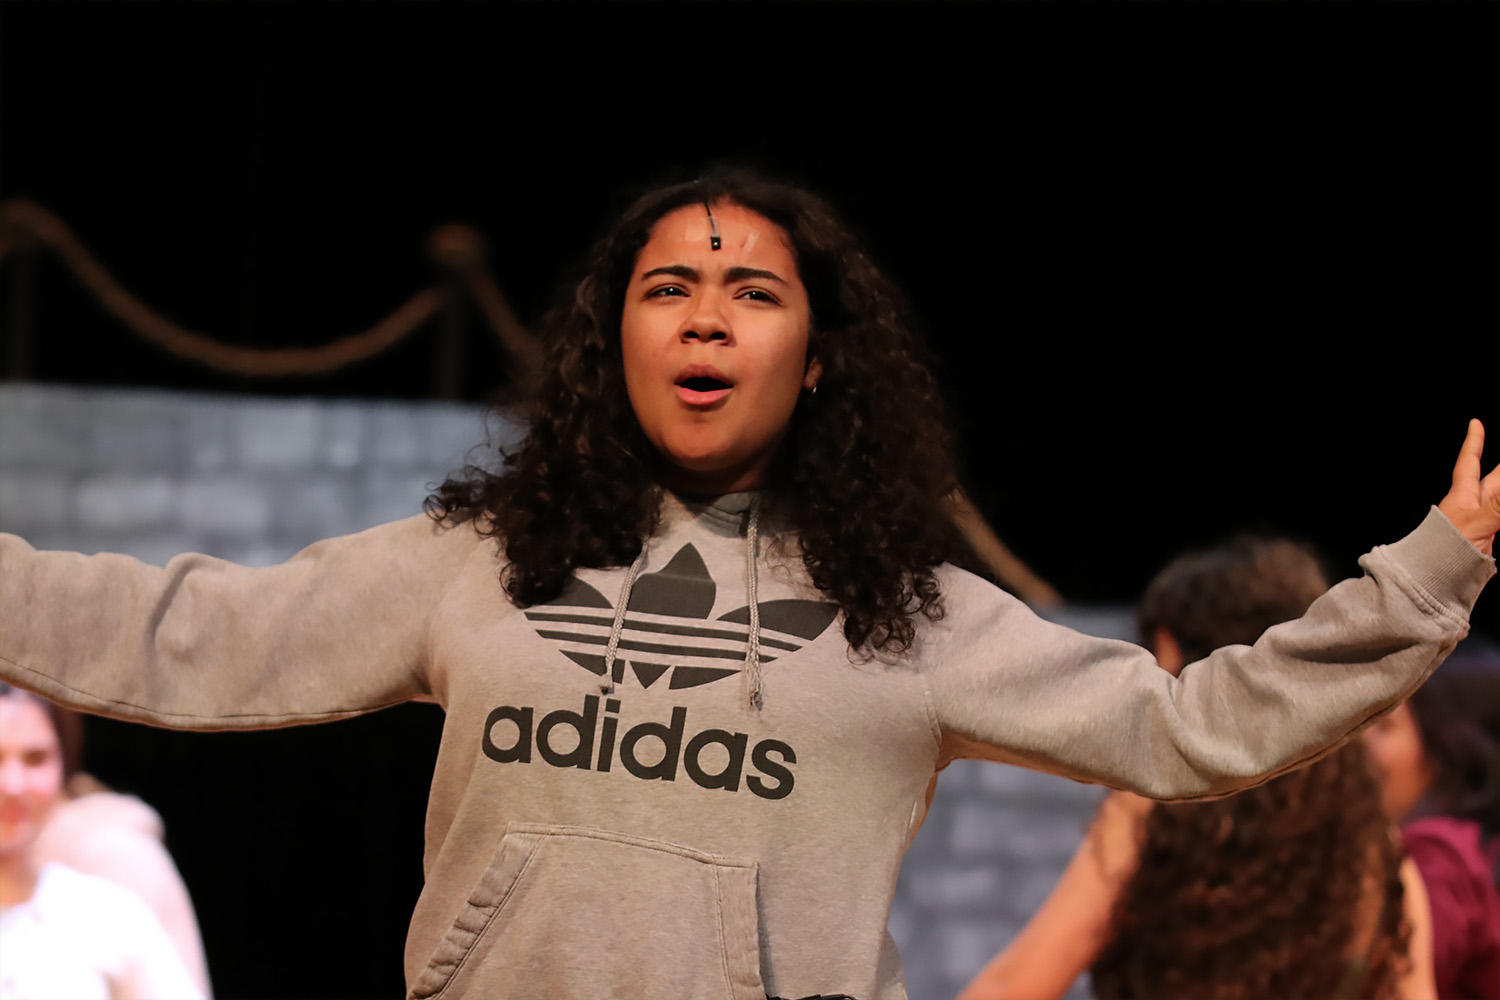 Freshman Alanis Rivera will make her EPHS debut in the role of Asaka.